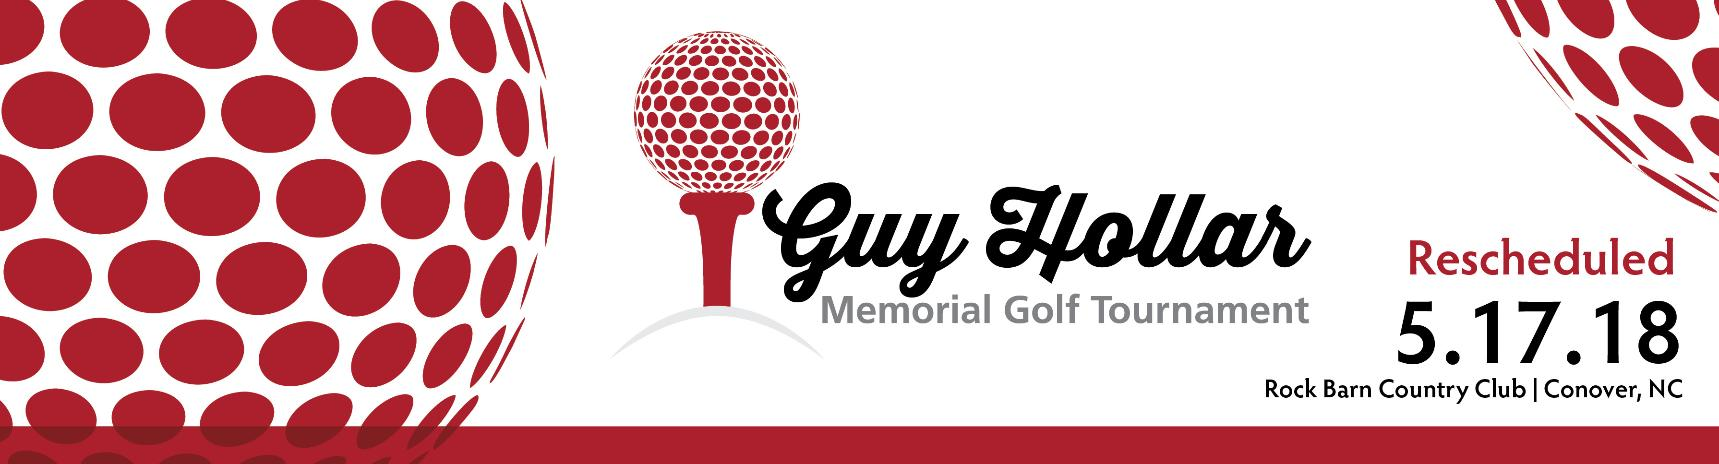 Guy Hollar Golf Tournament 2018